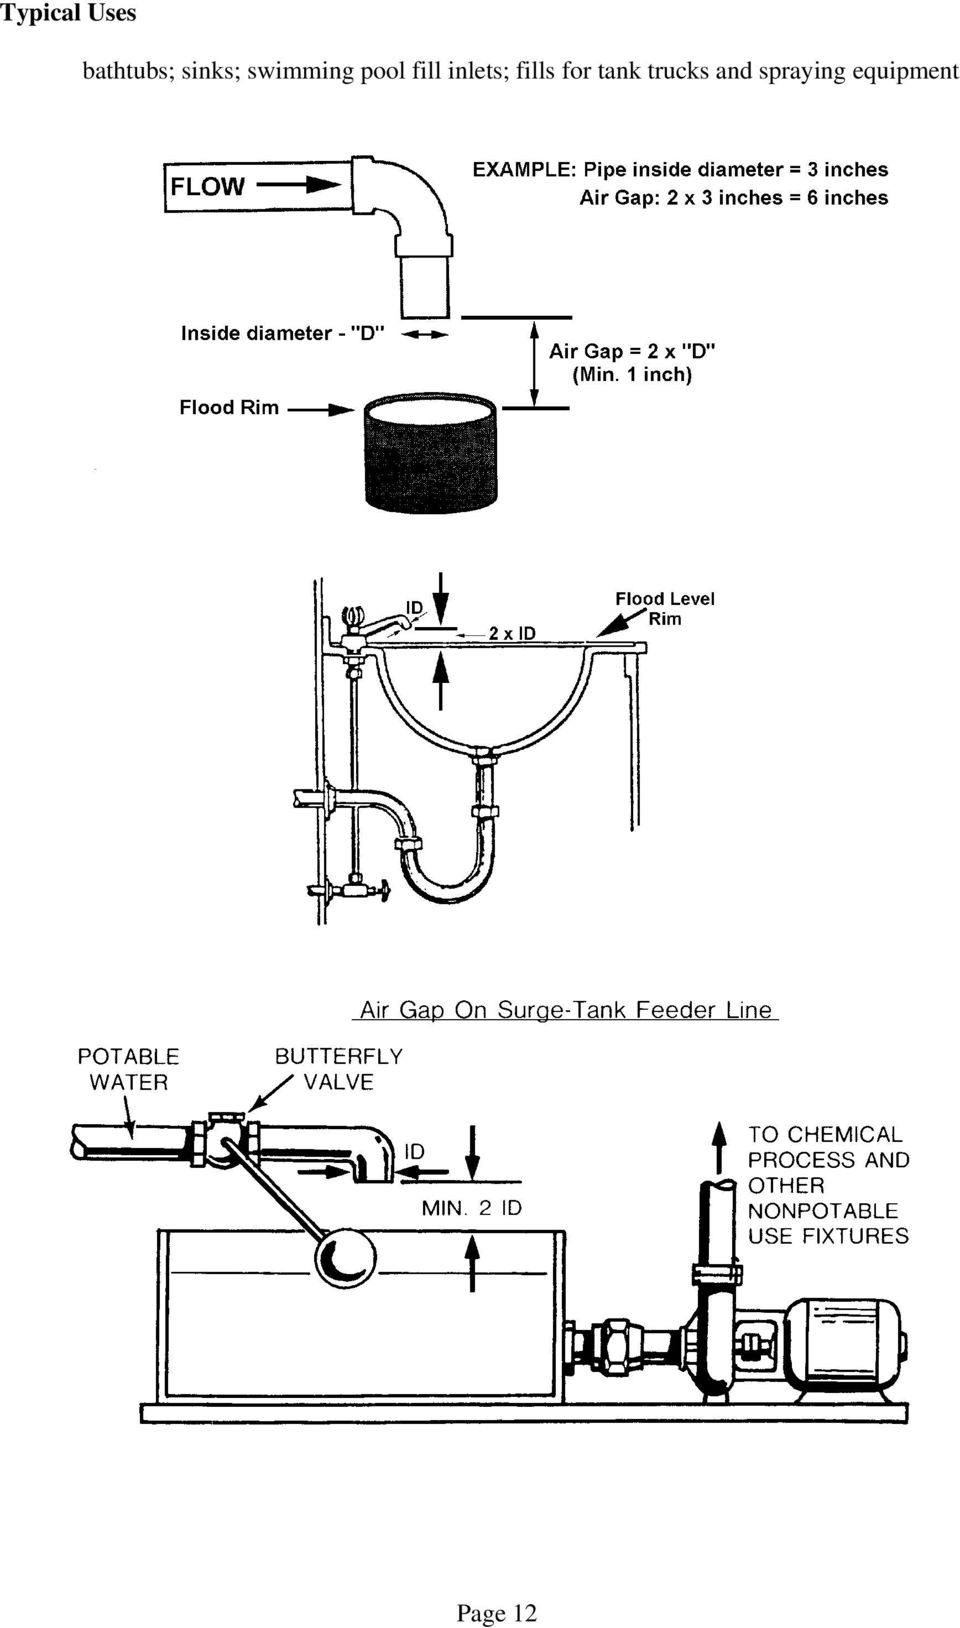 inlets; fills for tank